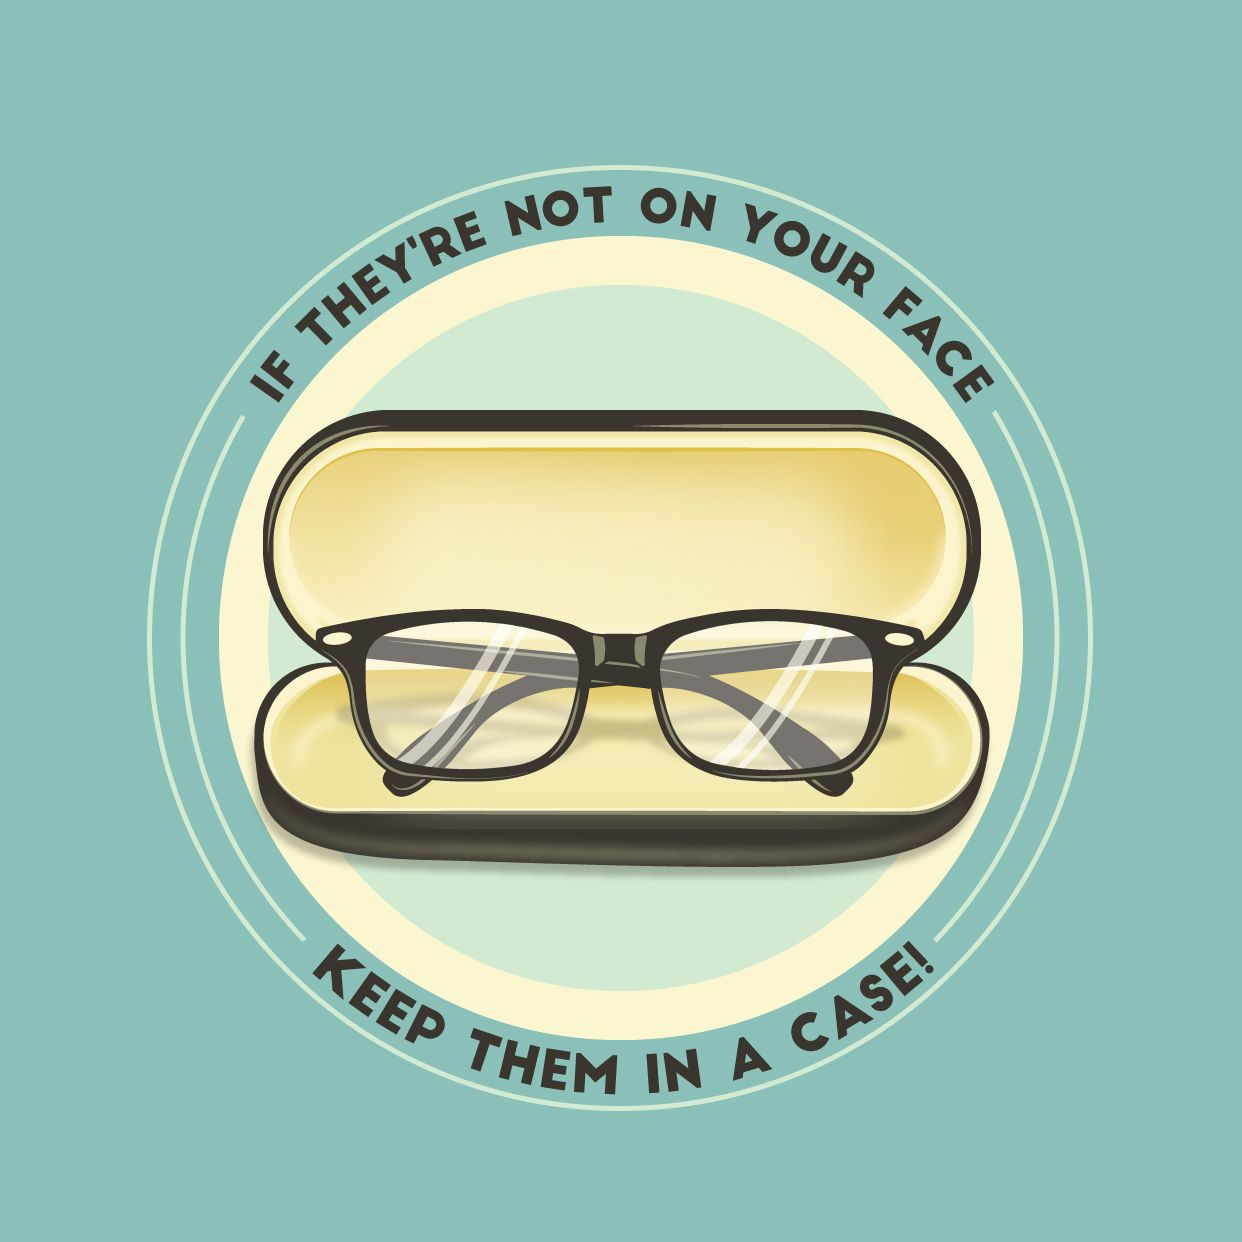 Don T Risk Breaking Your Glasses Be Sure To Keep Them In A Case When They Re Not On Your Face To Avoid Any Accidents Glasses Optometry Eye Facts